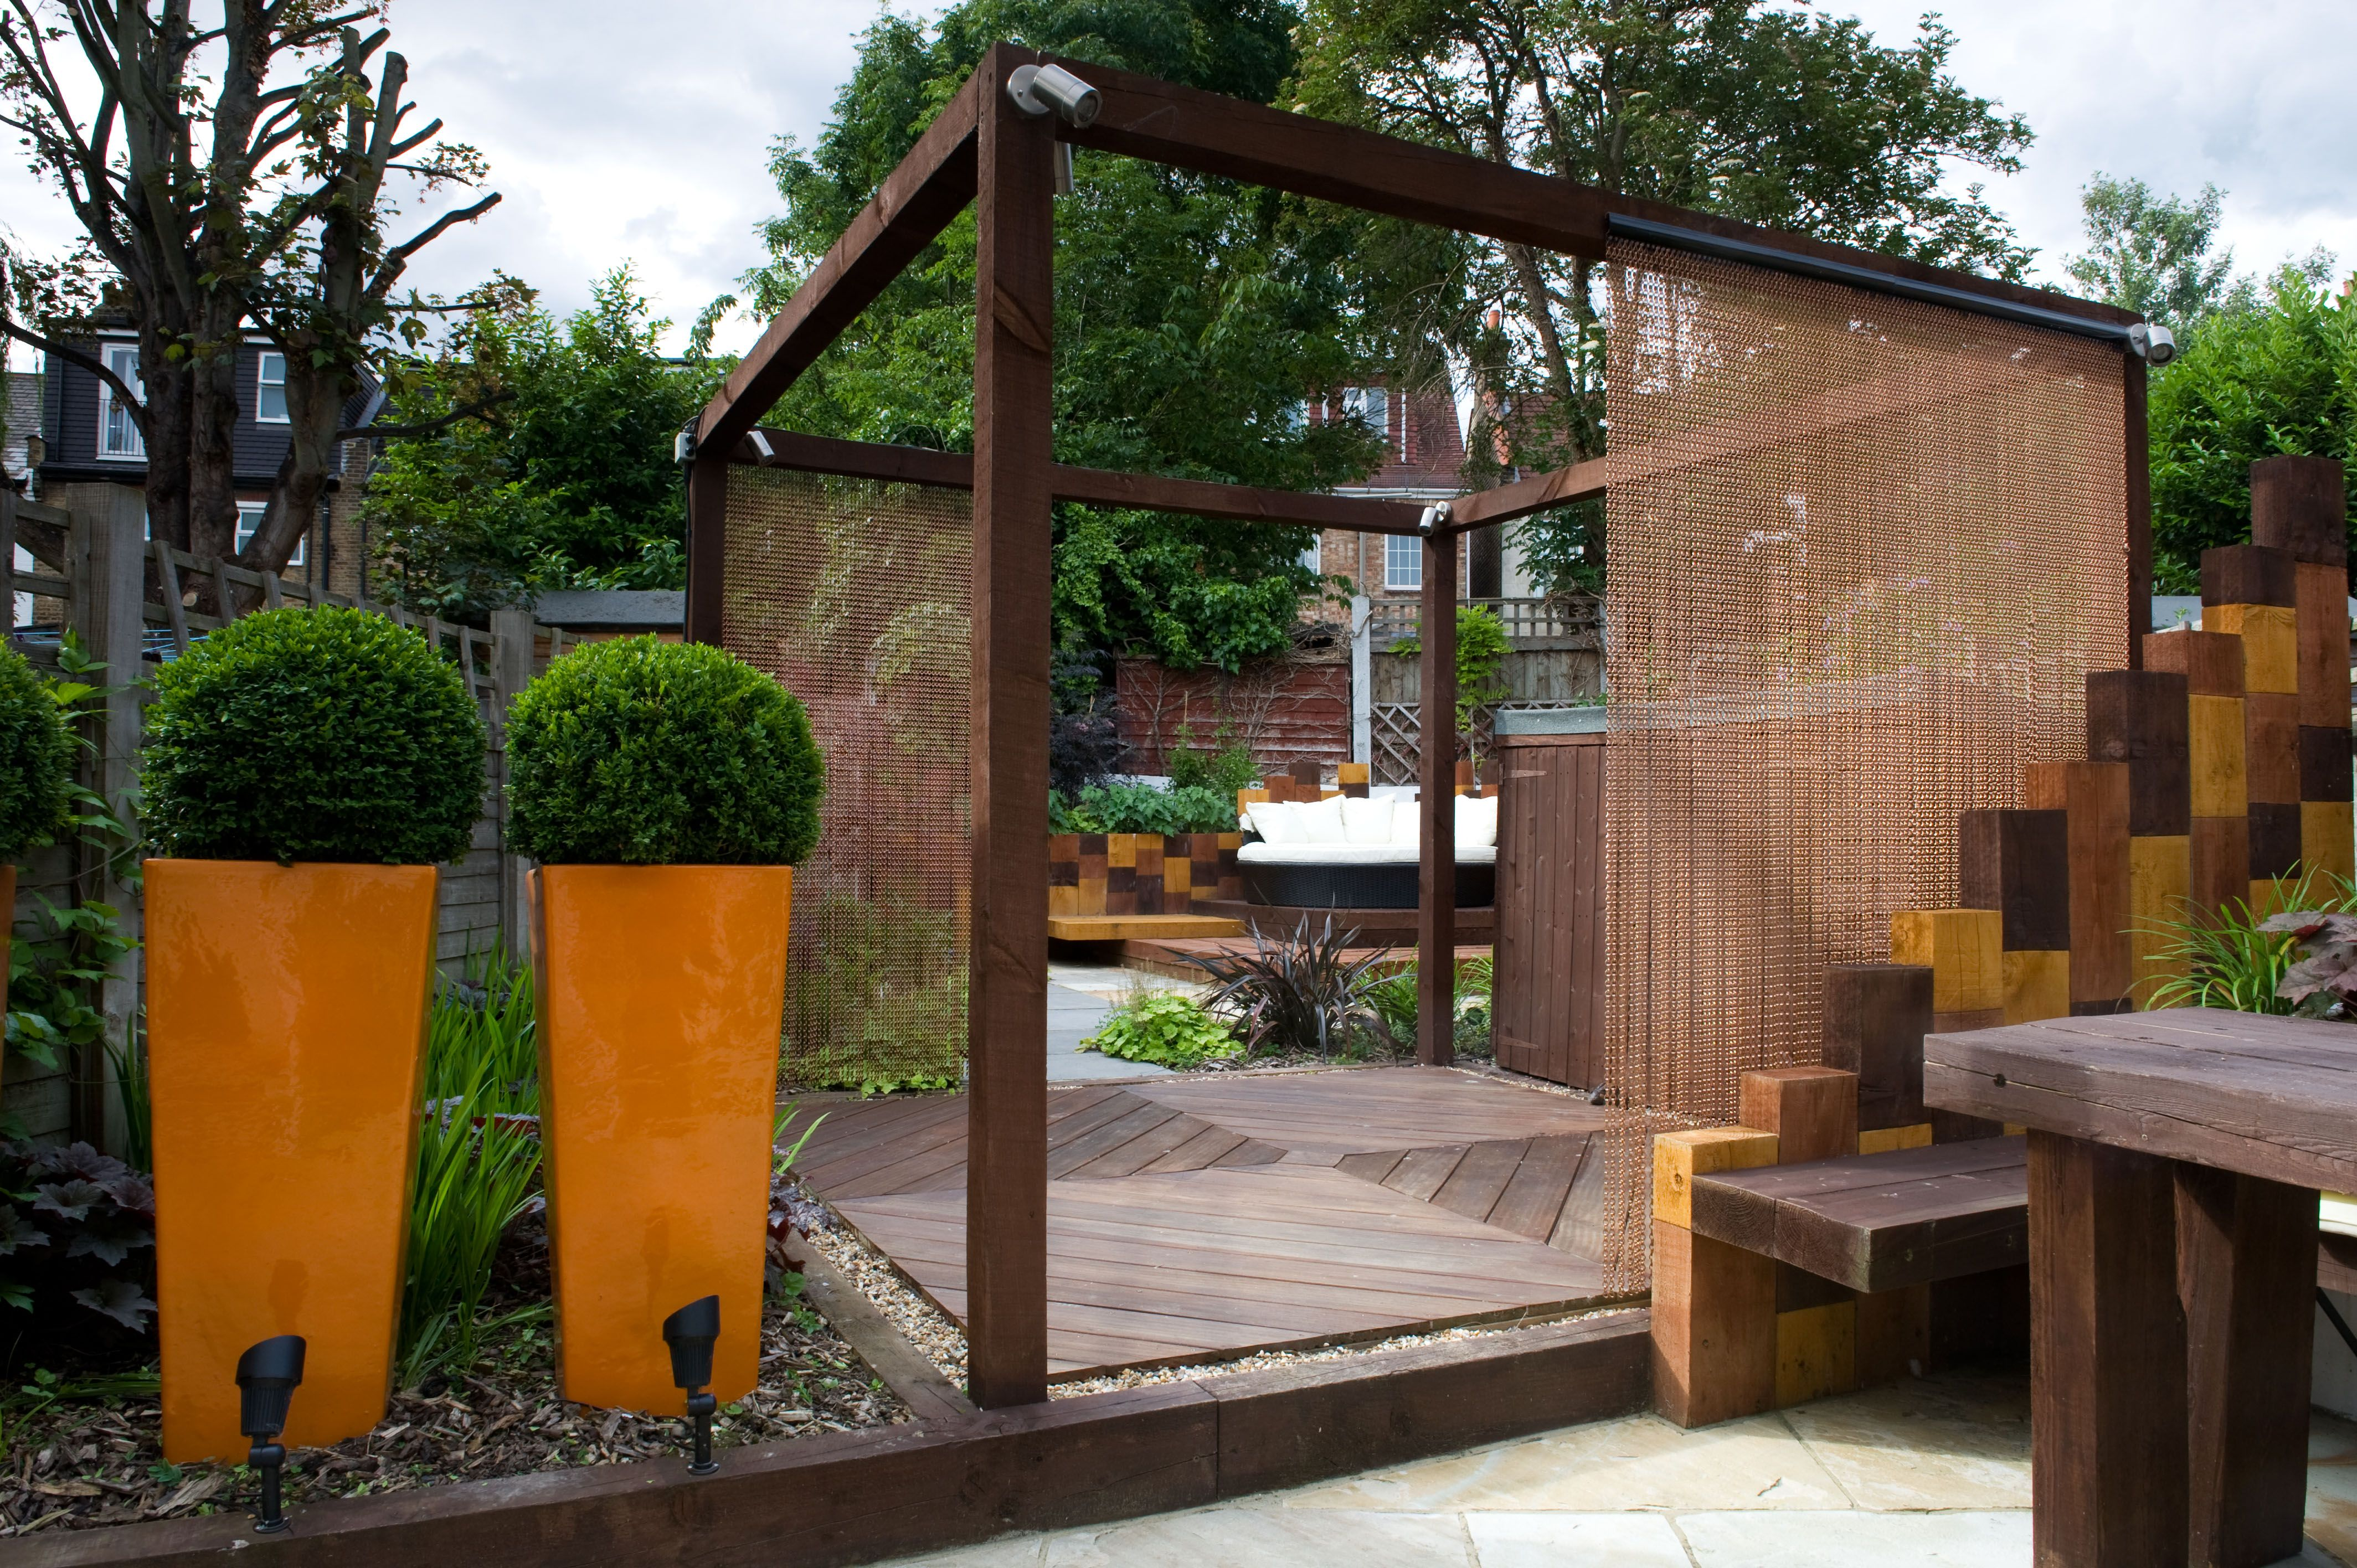 Modern Town Garden East London | East london, Railway sleepers and ...